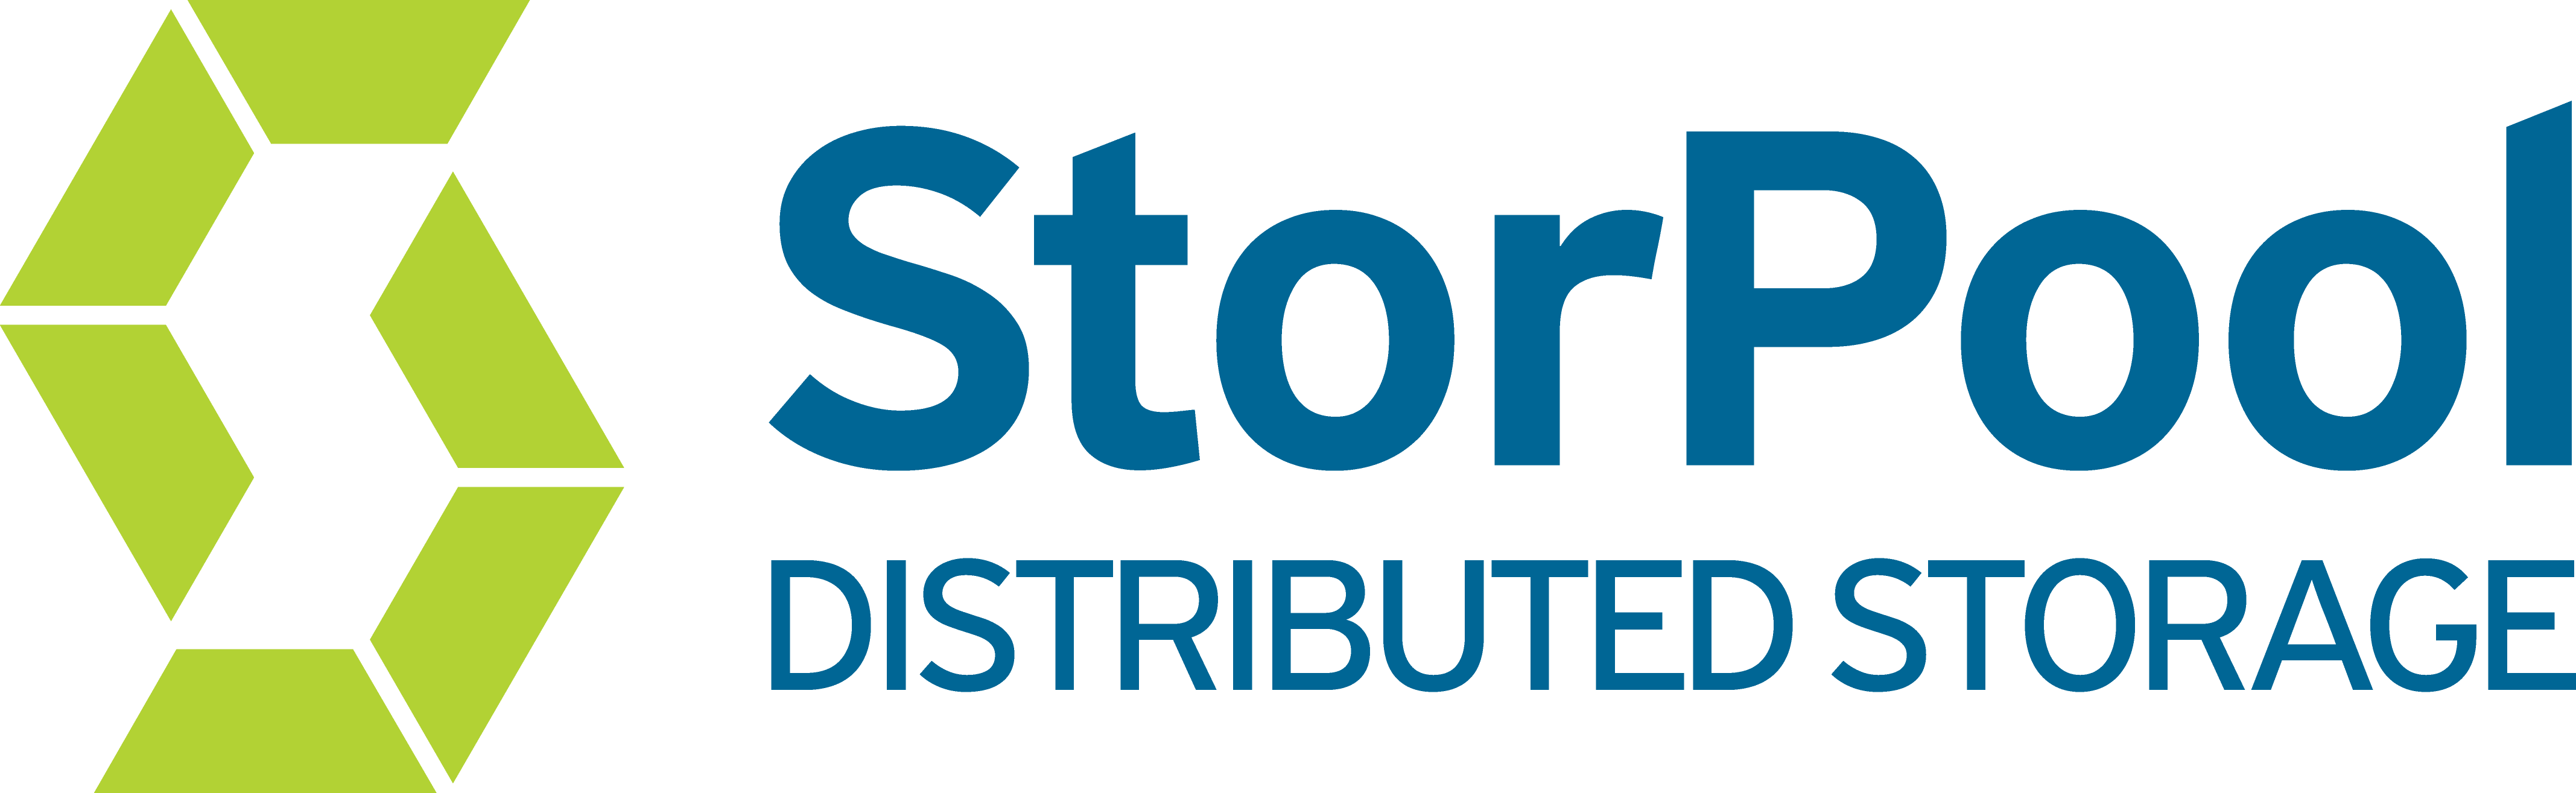 storpool-logo-blue-big